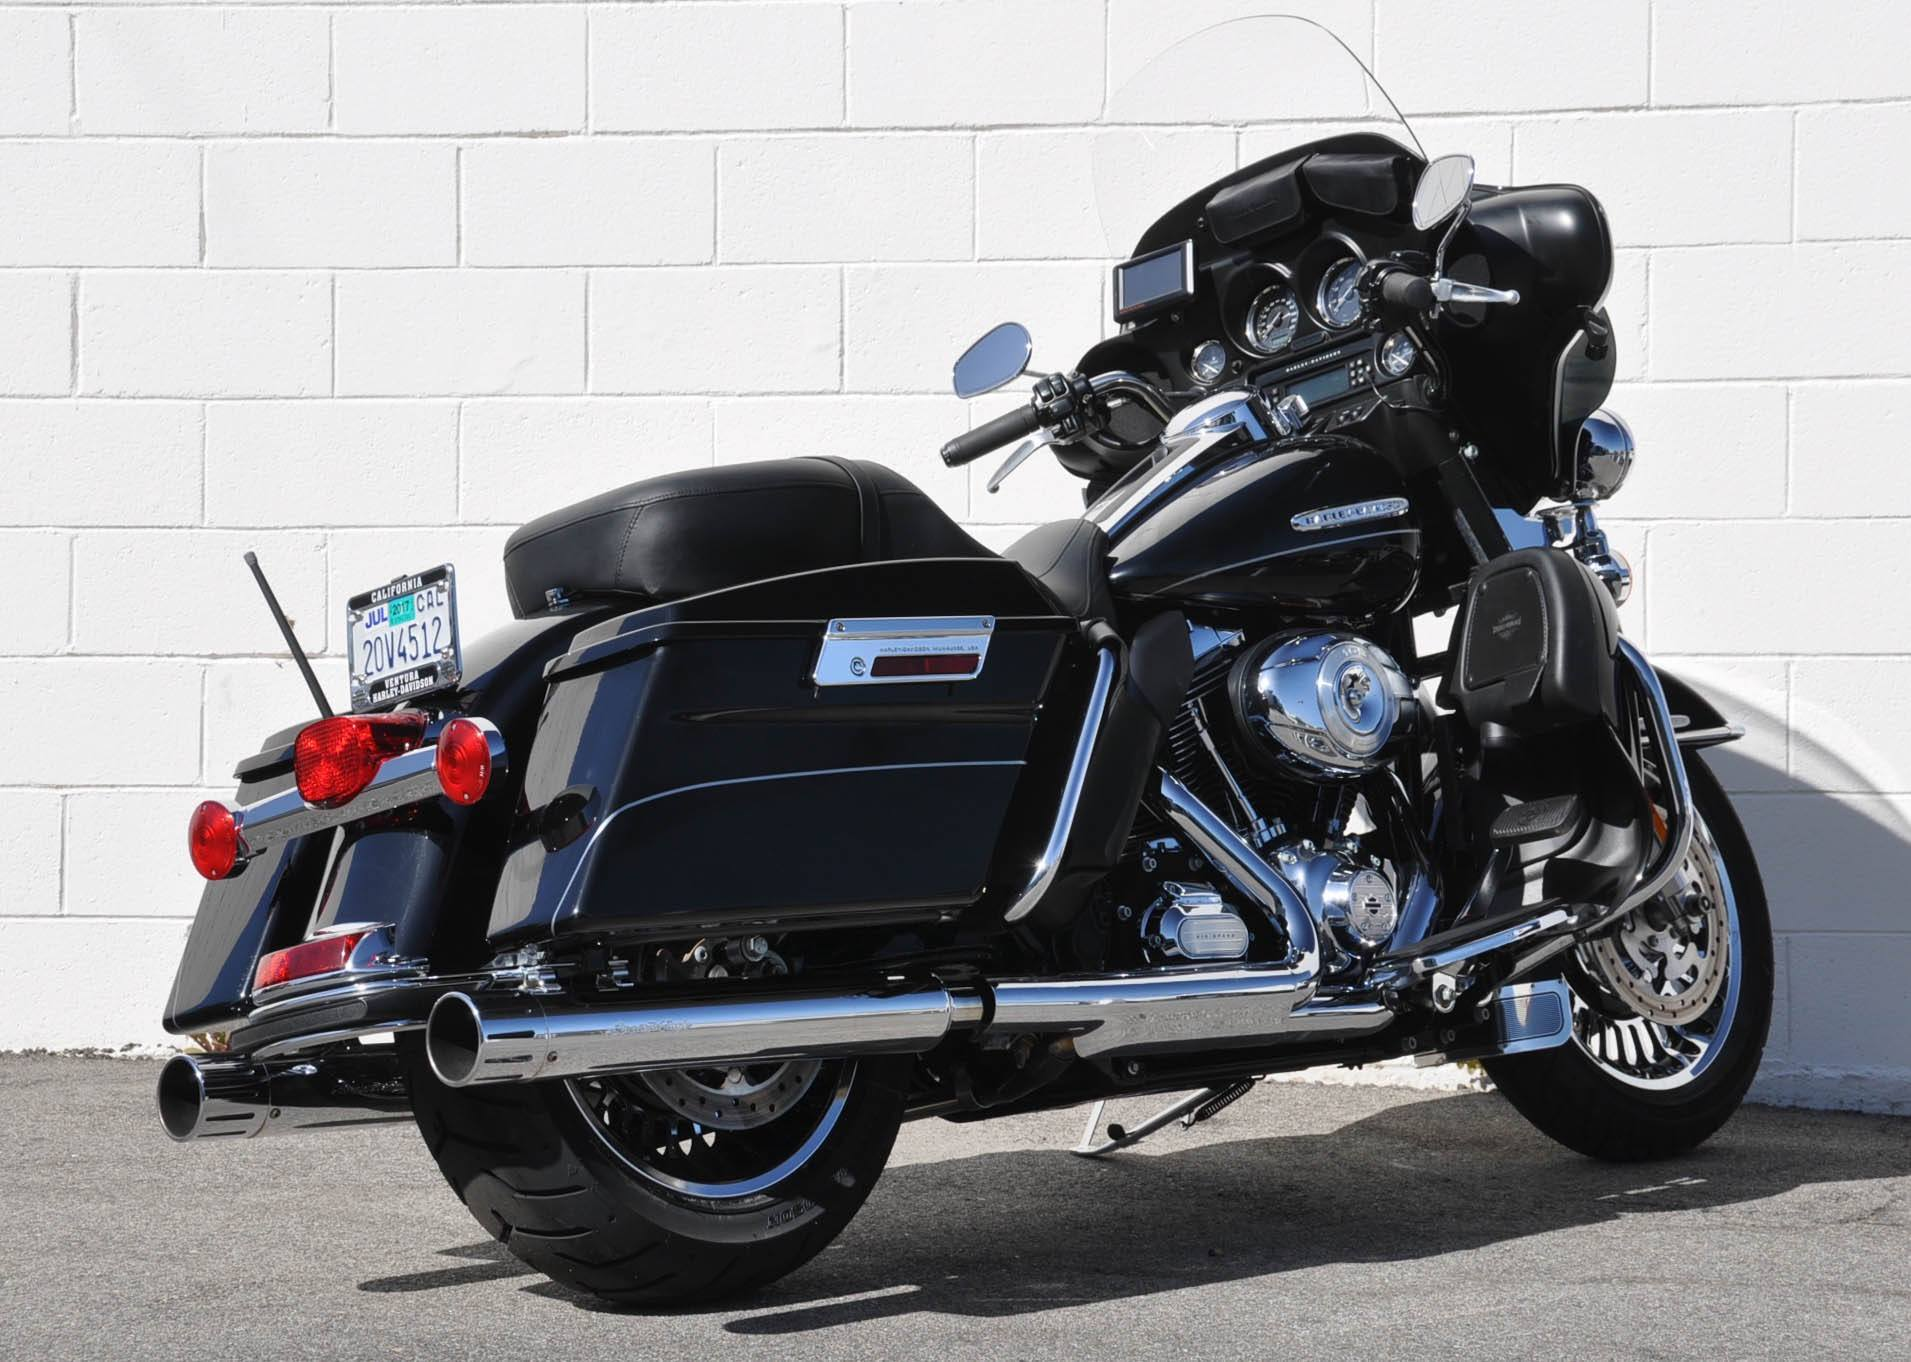 2011 Harley-Davidson Electra Glide® Ultra Limited in Thousand Oaks, California